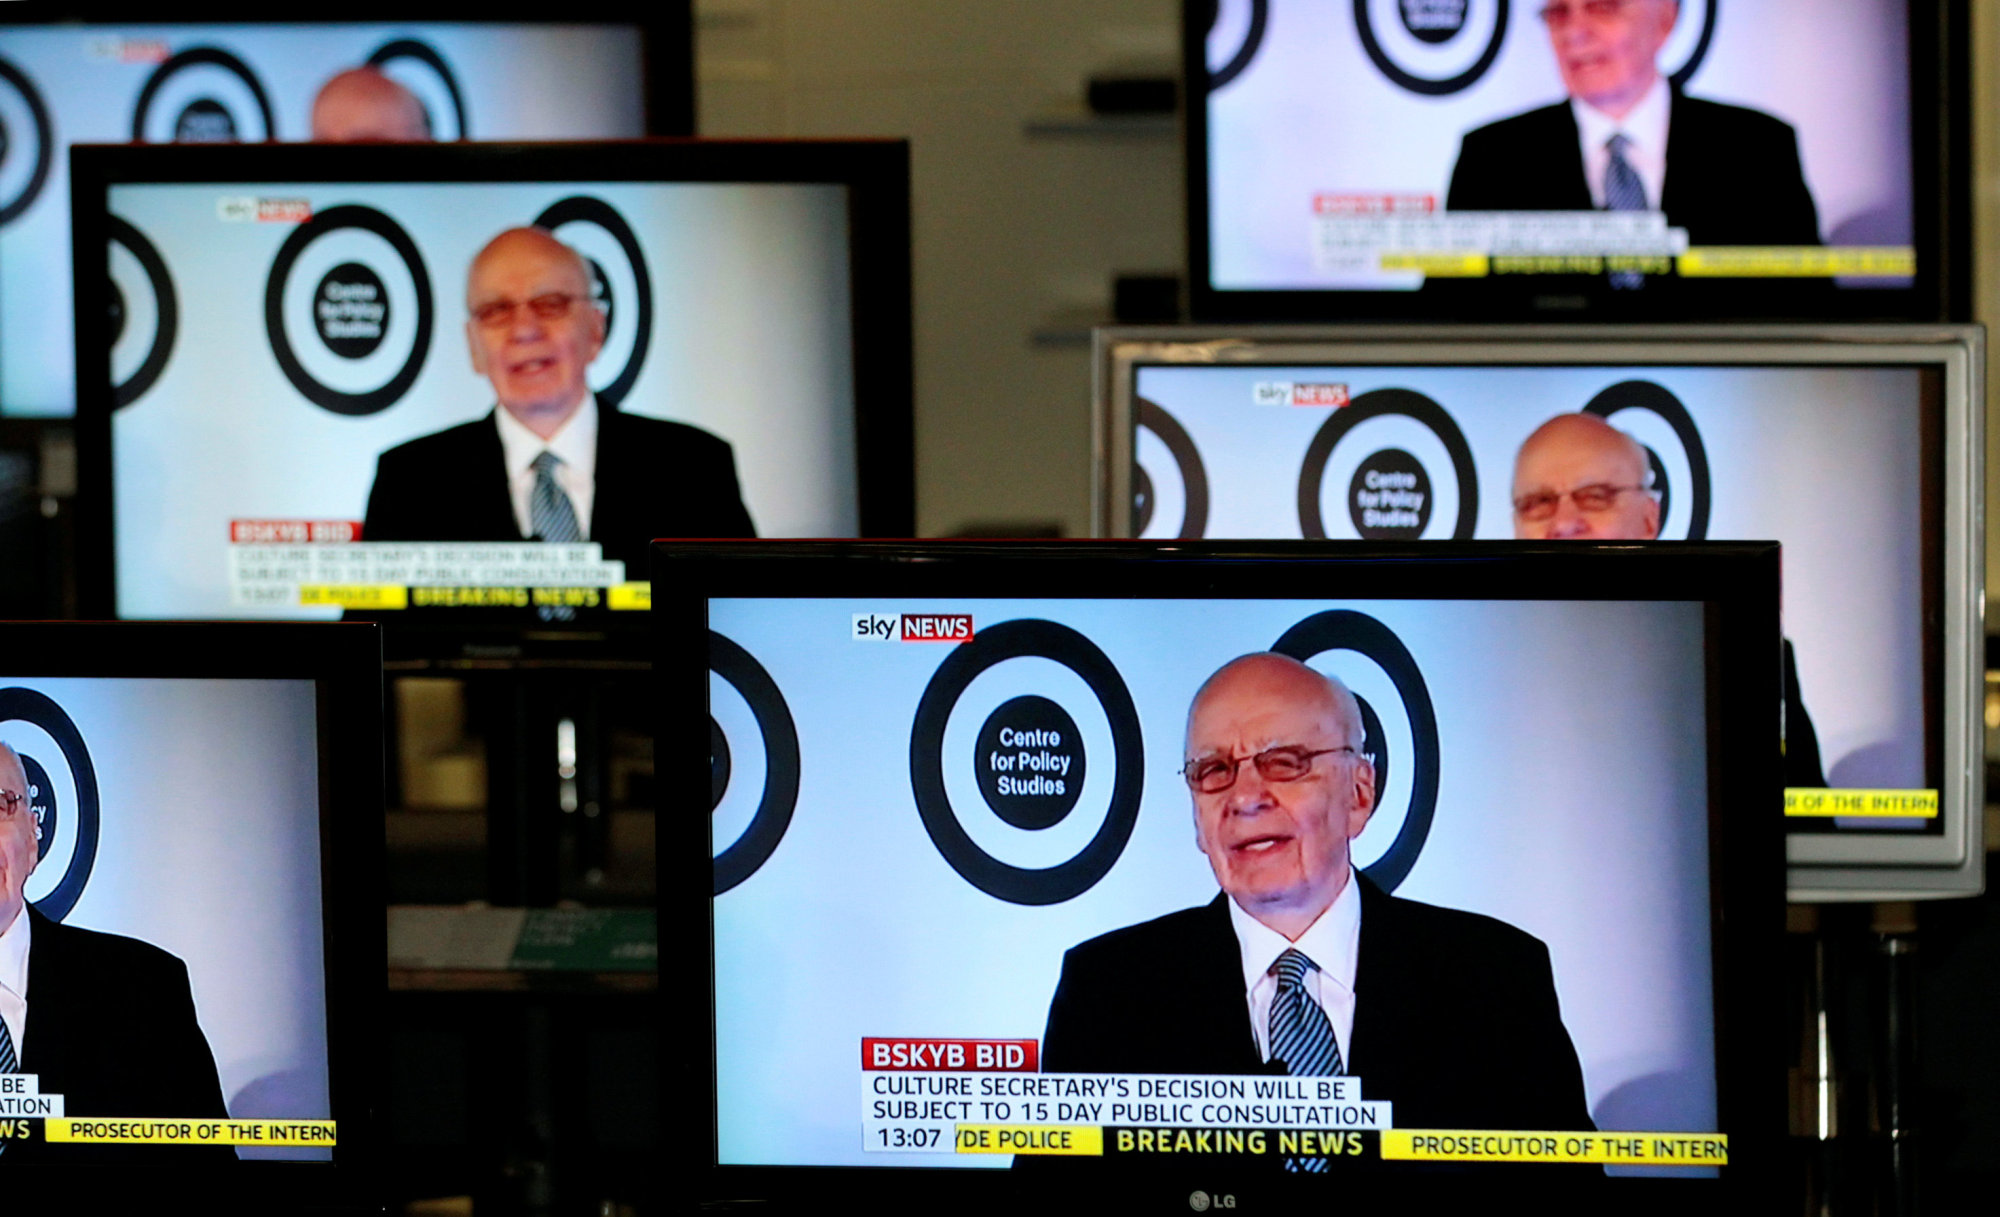 Executive Chairman of News Corporation and Executive Co-Chairman of Twenty-First Century Fox Rupert Murdoch is seen talking on Sky News on television screens in an electrical store in Edinburgh, Scotland, Tuesday. | REUTERS